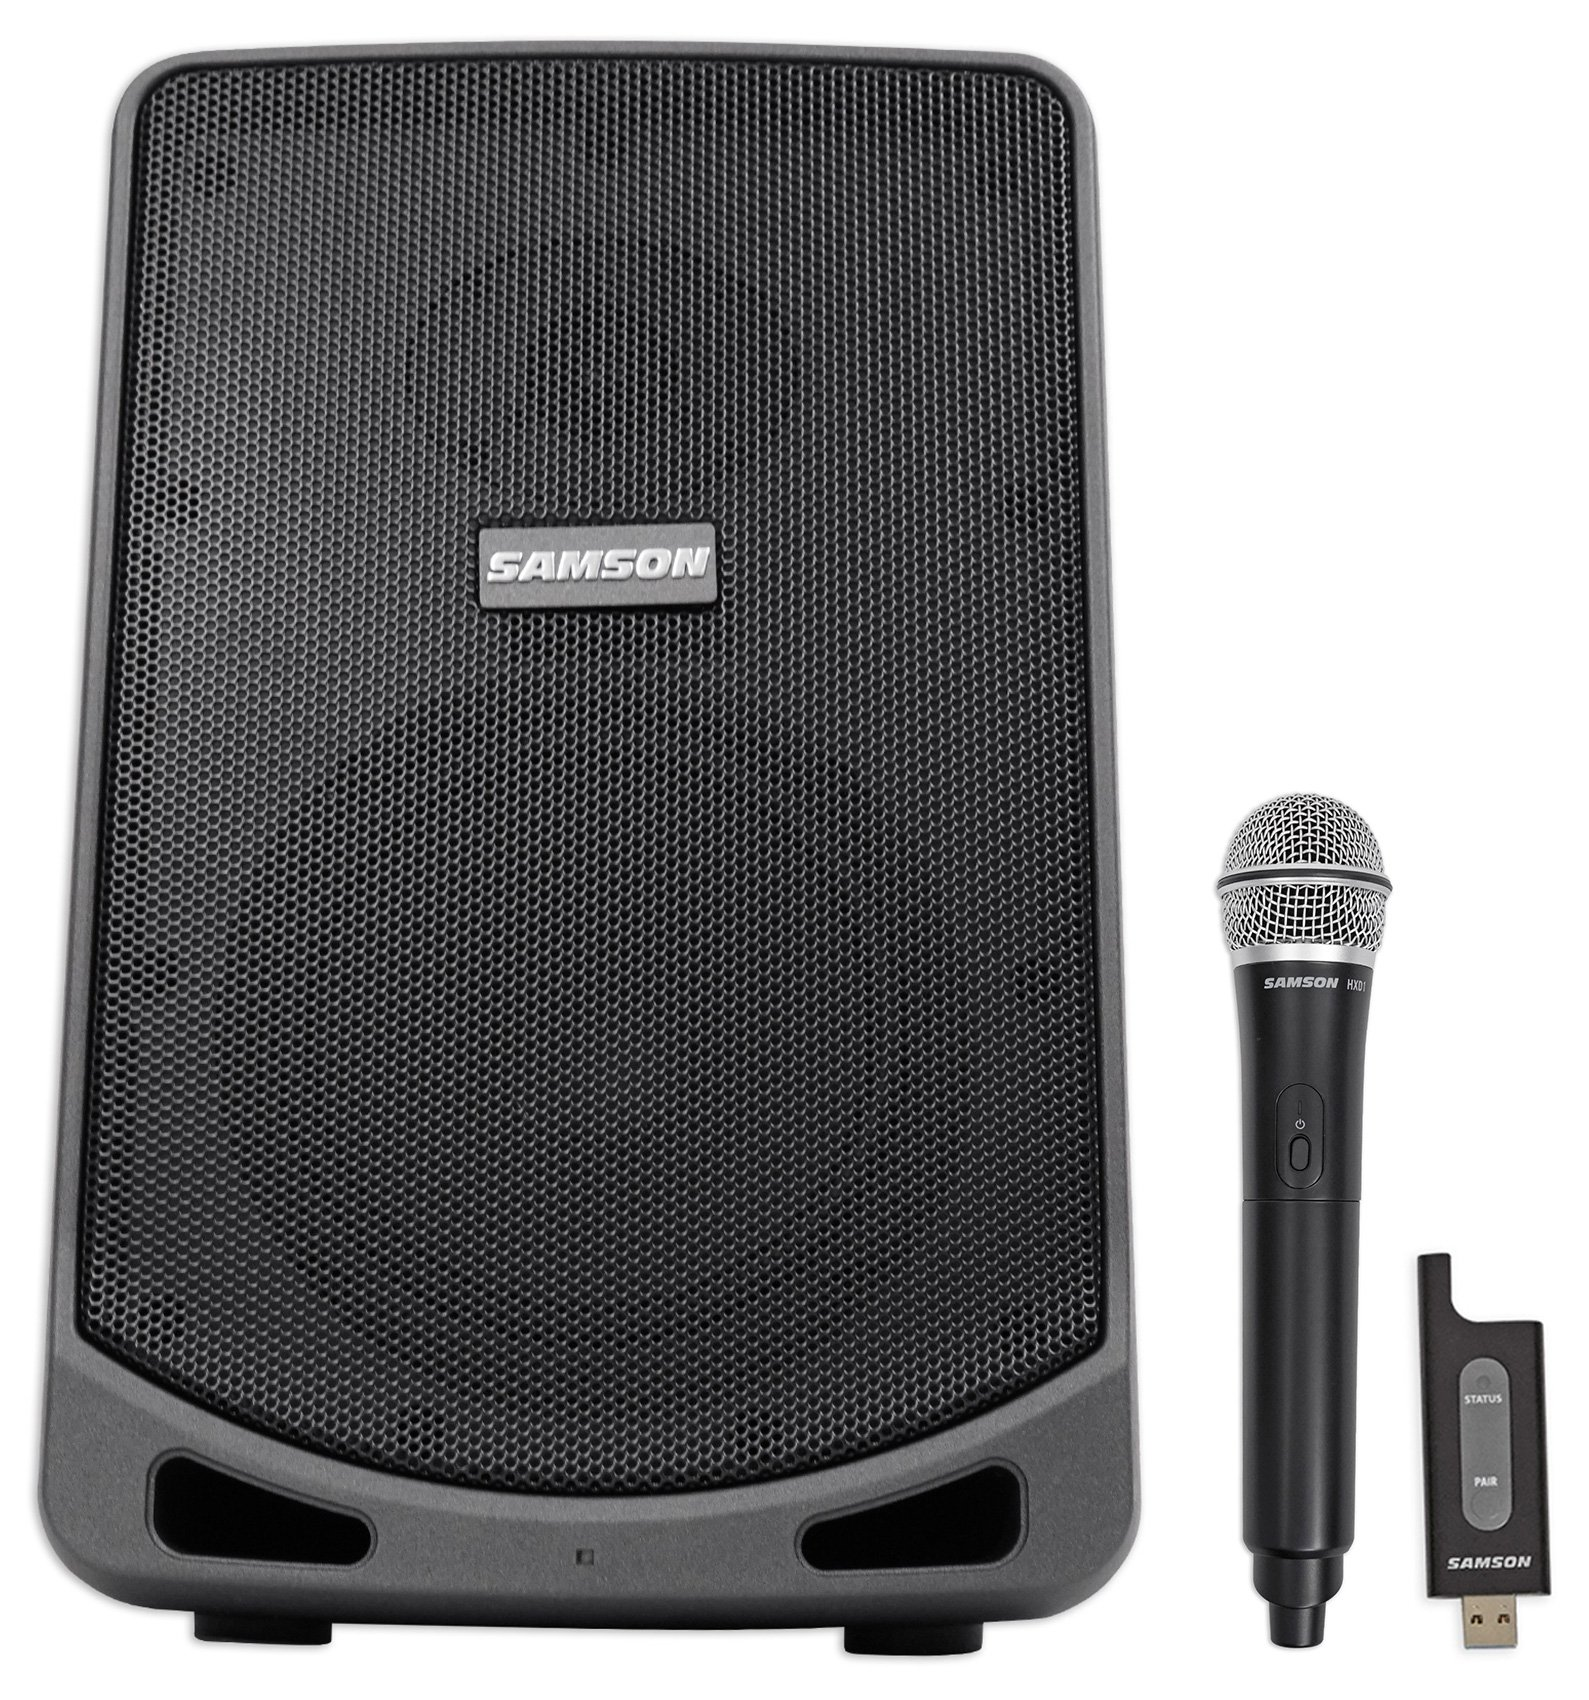 Samson 6'' Portable Rechargeable Speaker+Mic For Workout, Yoga, Spin, Fitness